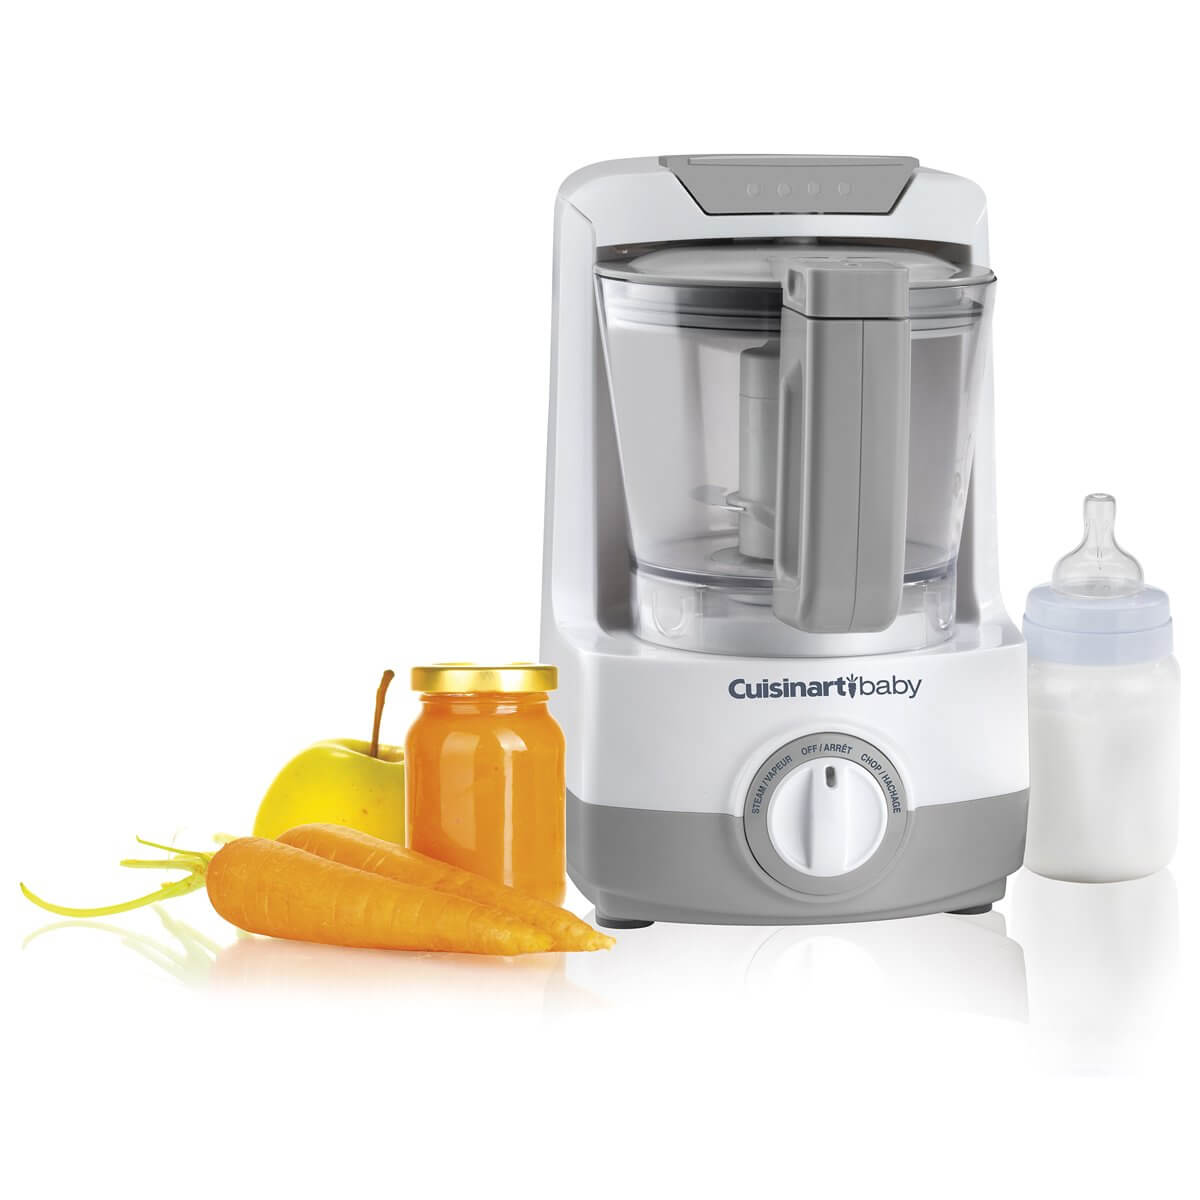 cuisinart baby food maker, Cuisinart BFM-1000 Baby Food Maker and Bottle Warmer, best baby food maker, Fresh, Healthy and Tasty Baby Food Making, baby food maker